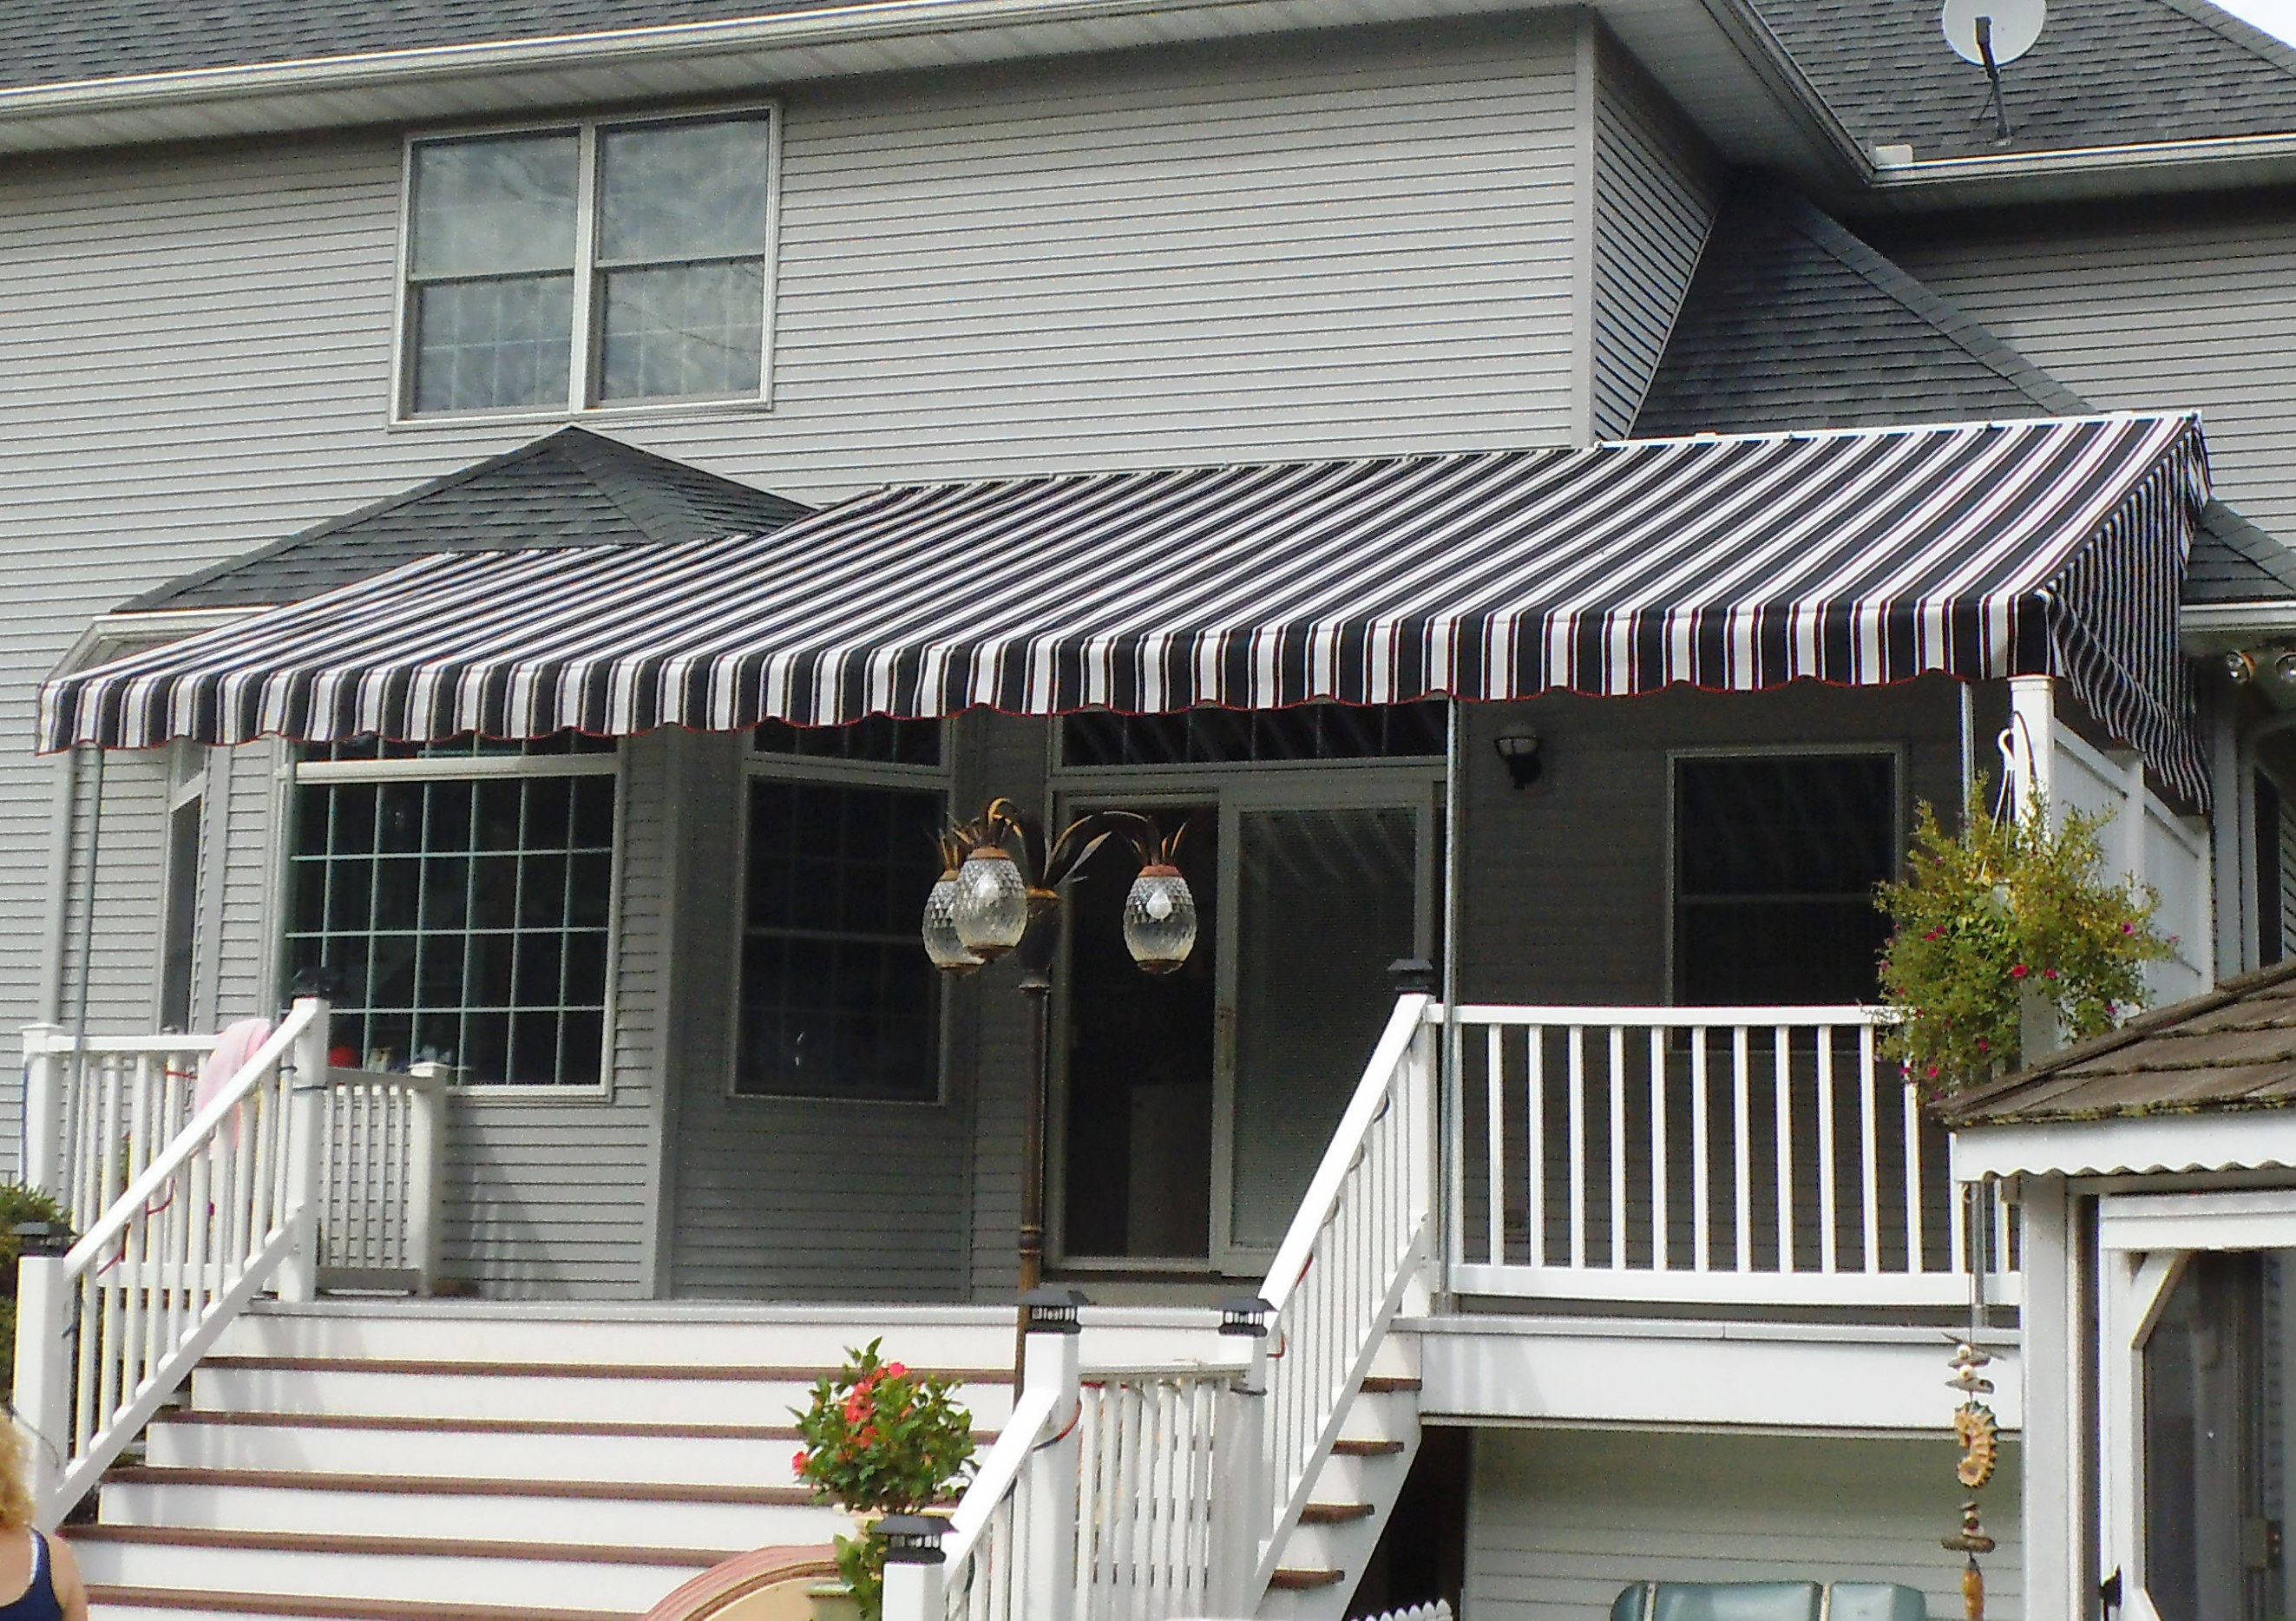 Stationary Awnings Gallery - Leisure Time Awnings